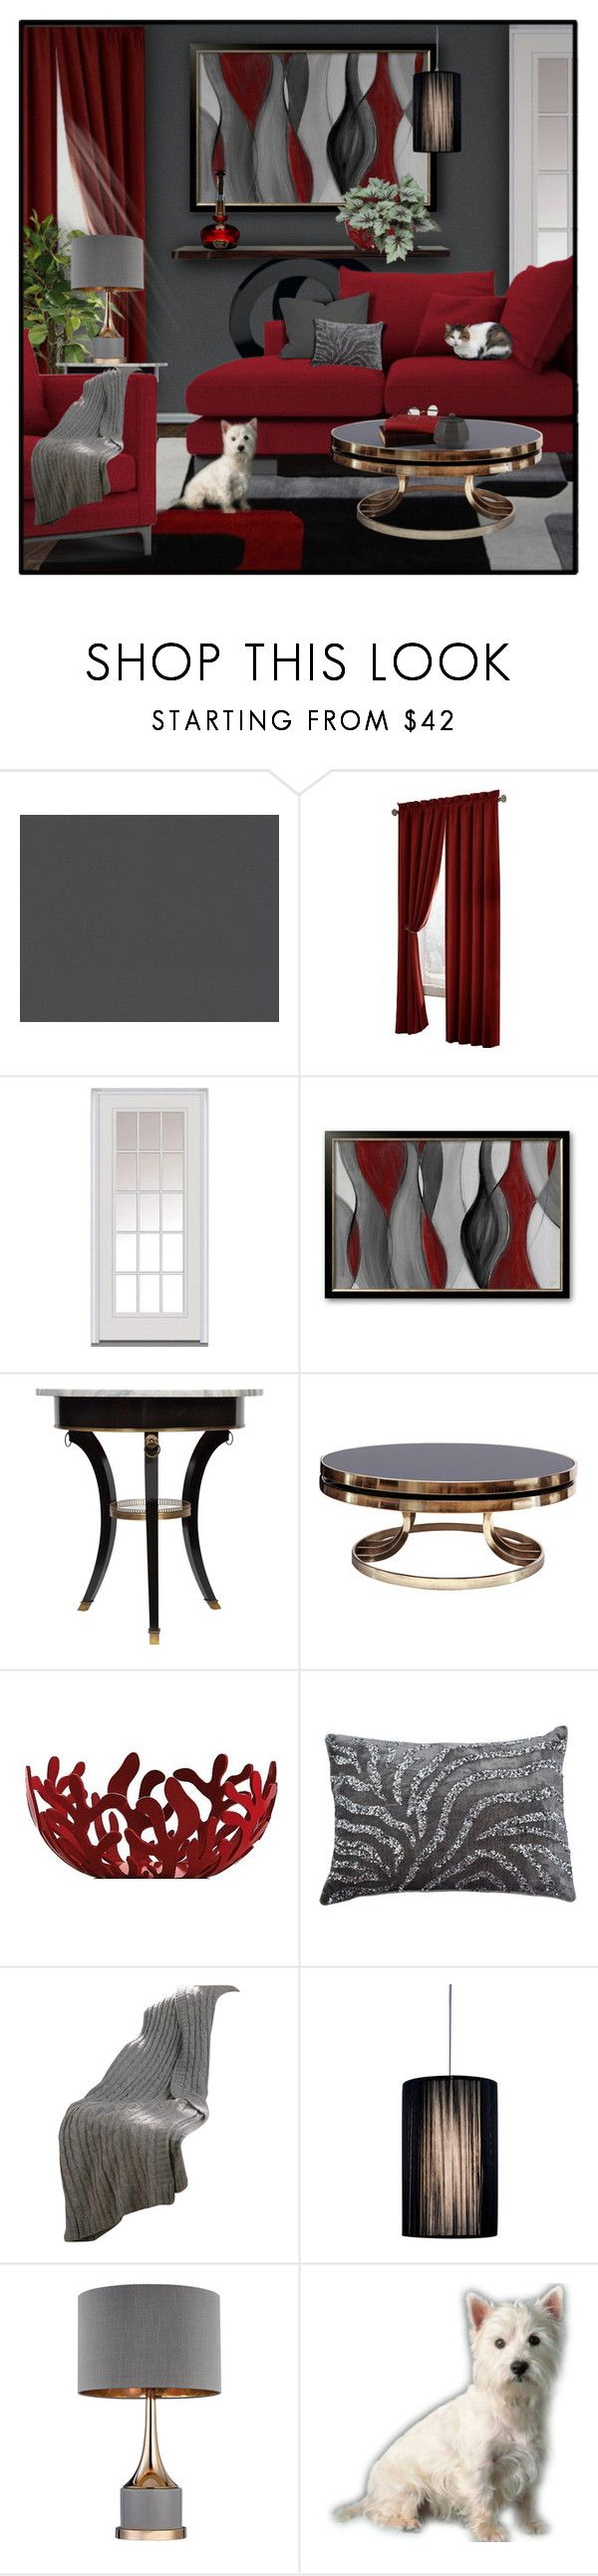 55 best Canvass Painting/Wall decor images on Pinterest | Canvases ...